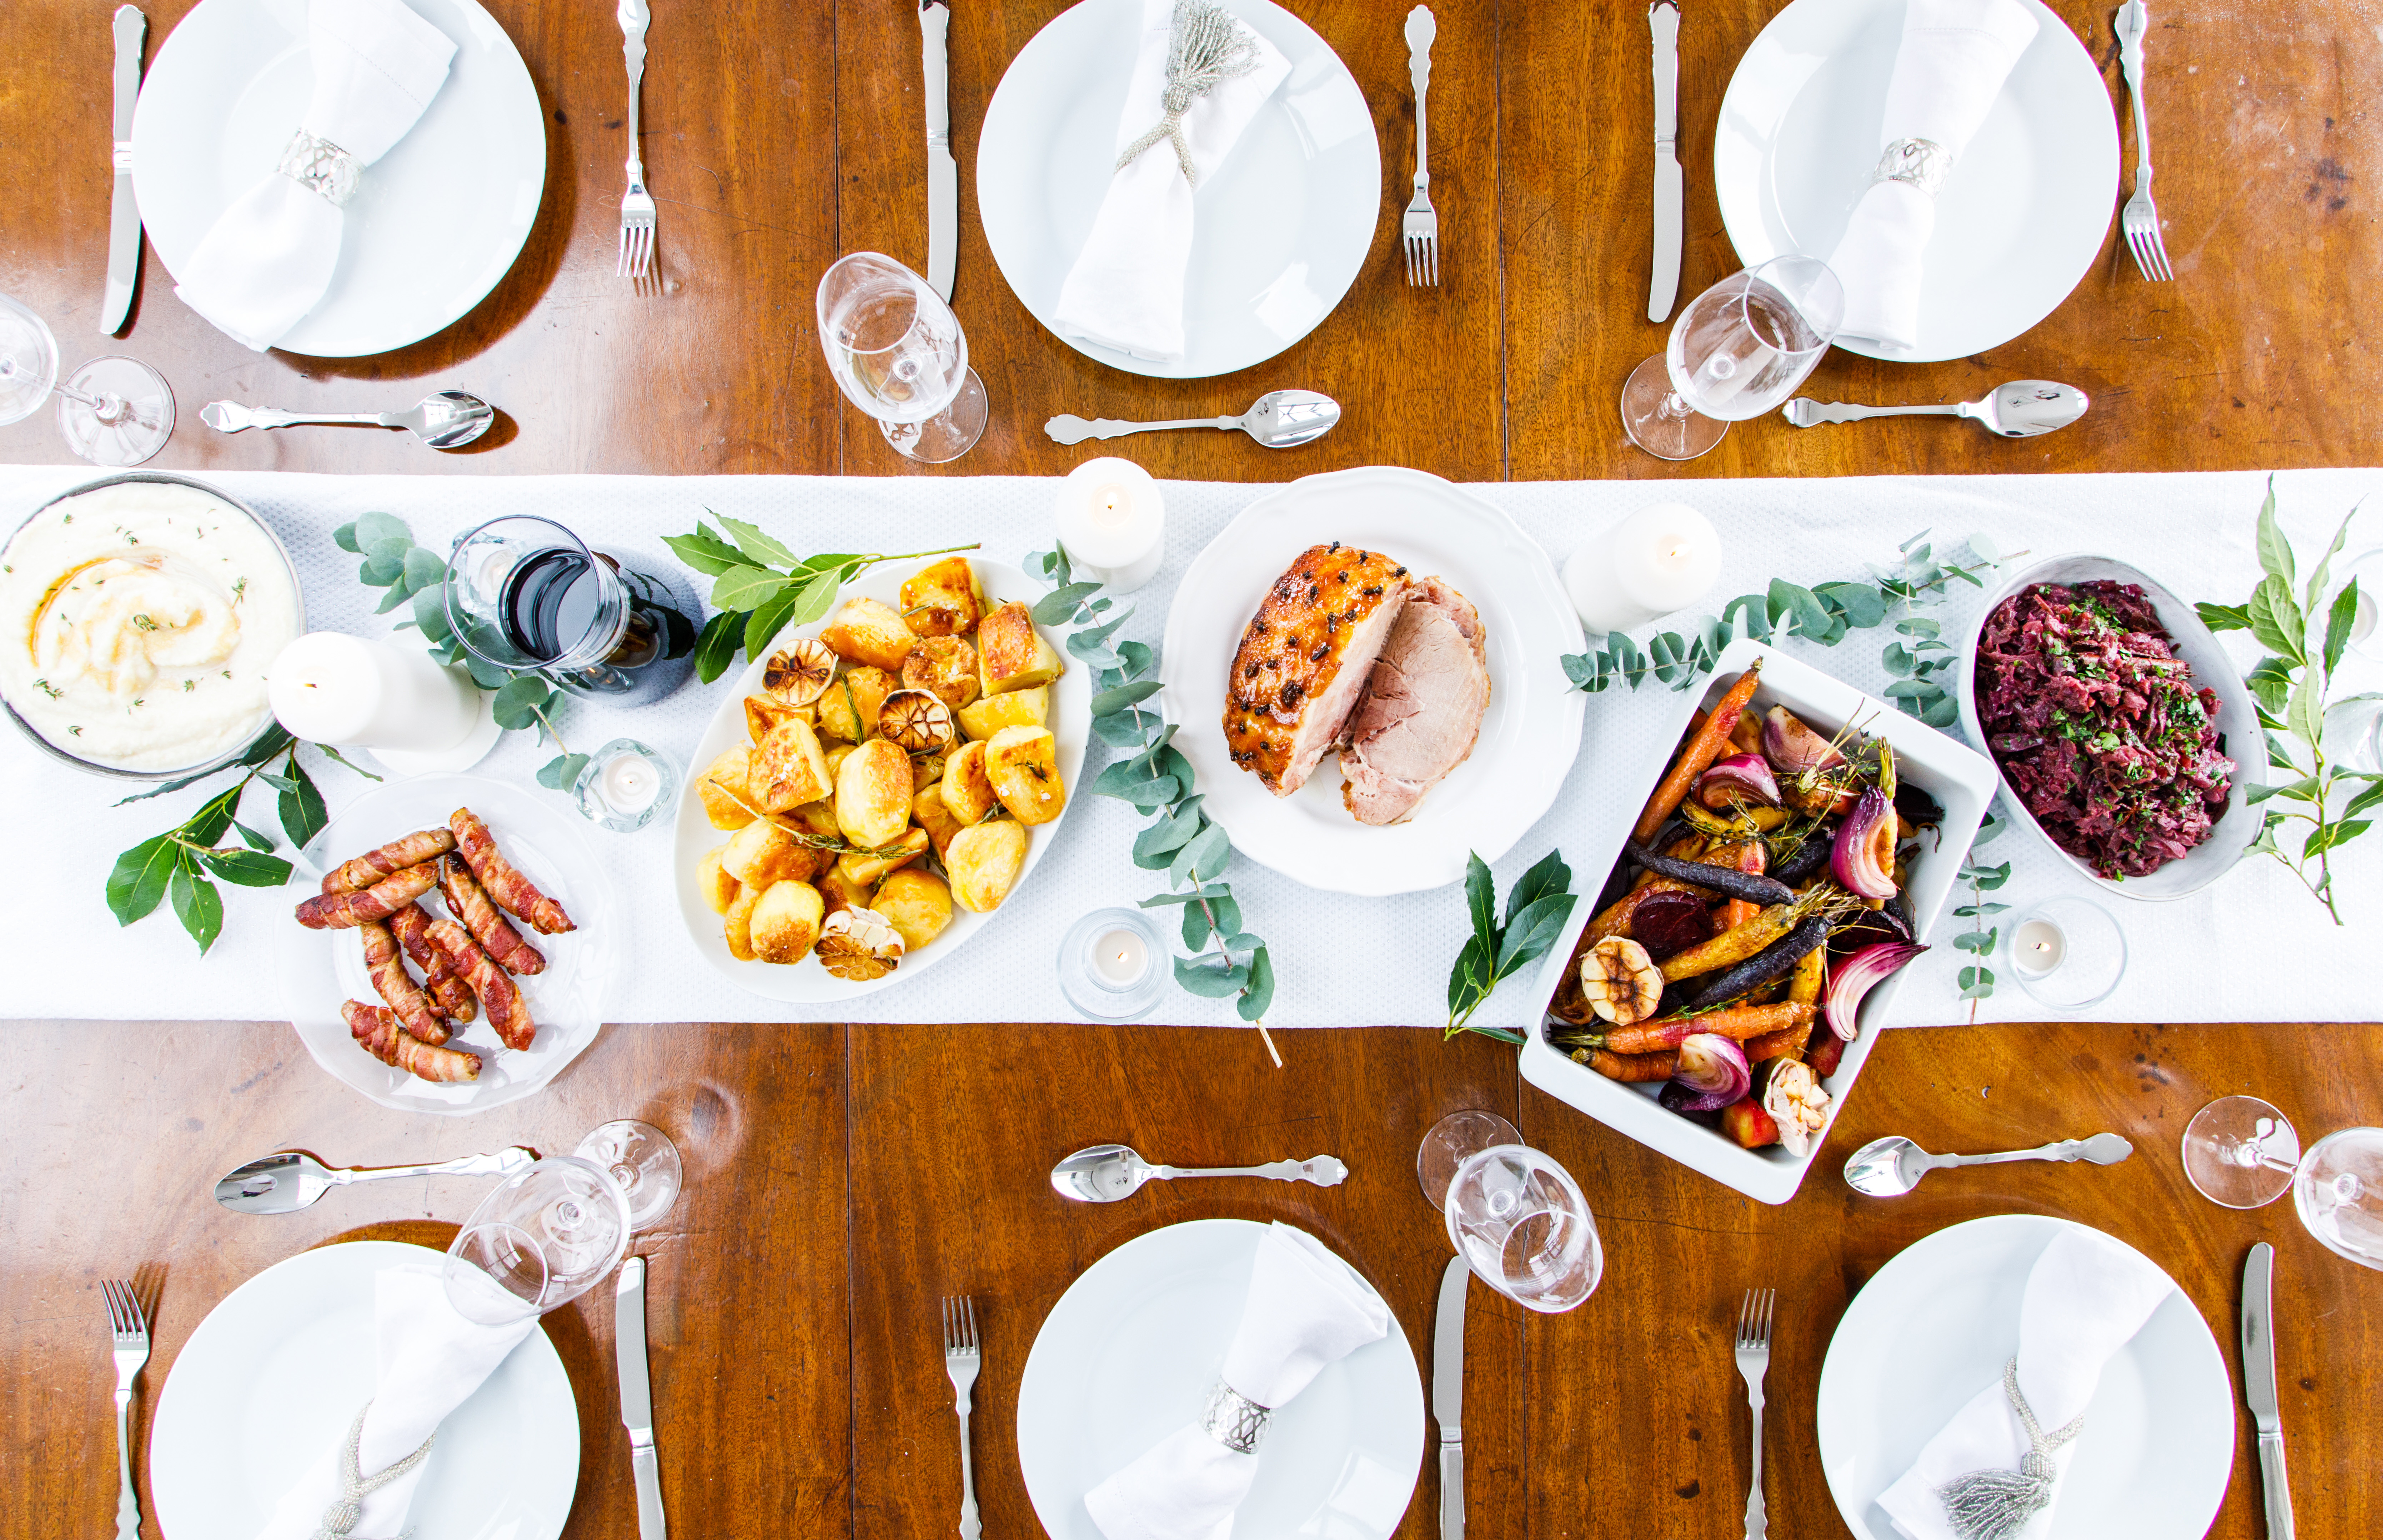 Full table of winter food